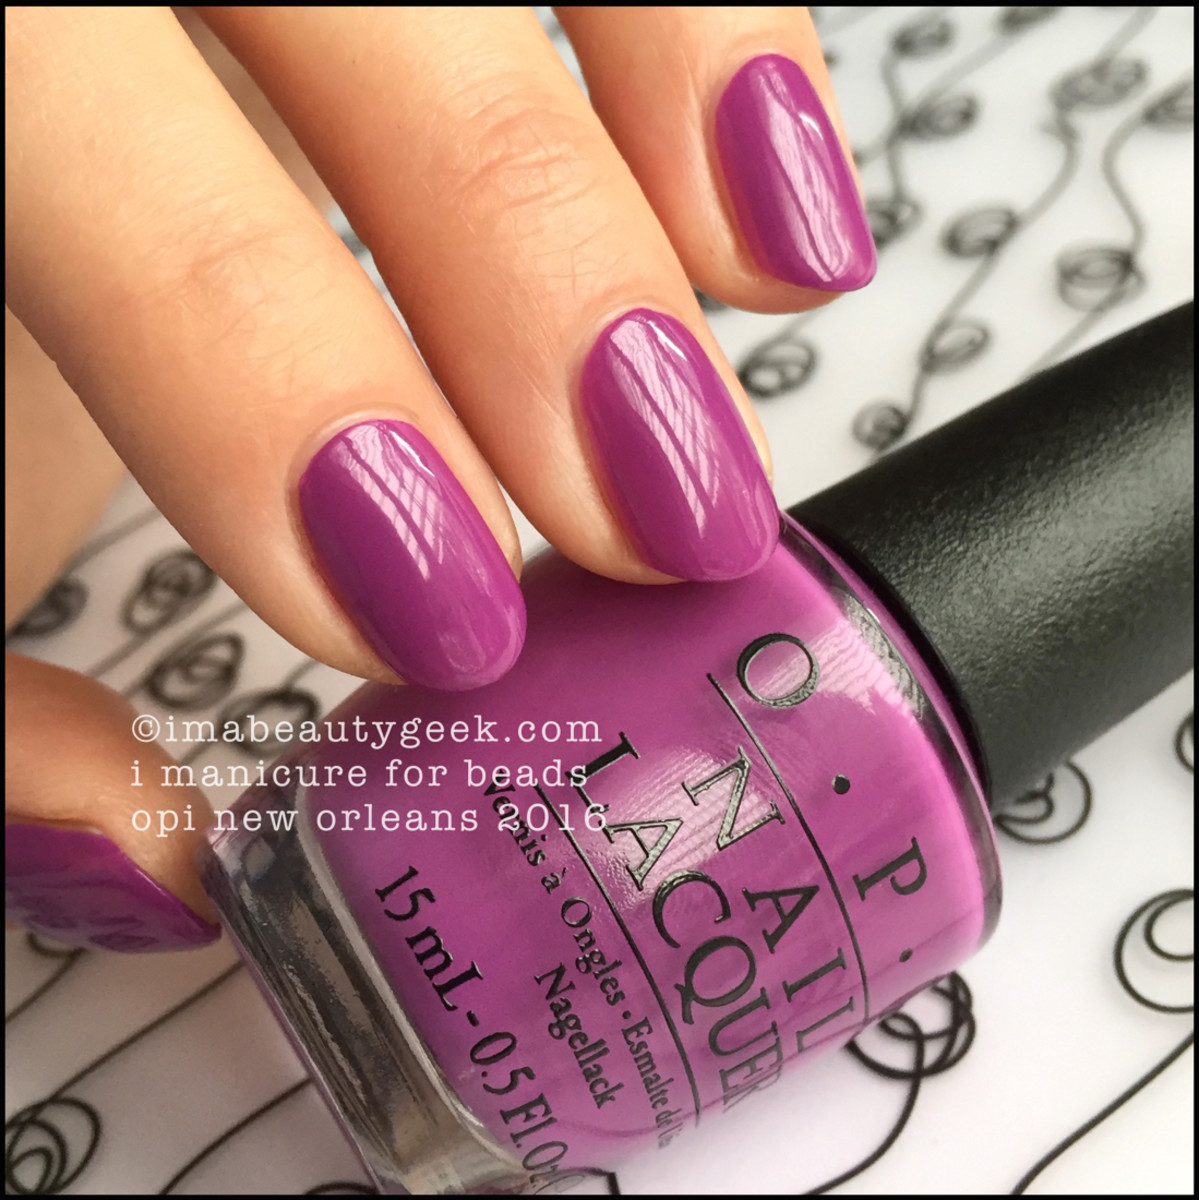 OPI I Manicure for Beads_OPI New Orleans 2016 Collection Swatches Review